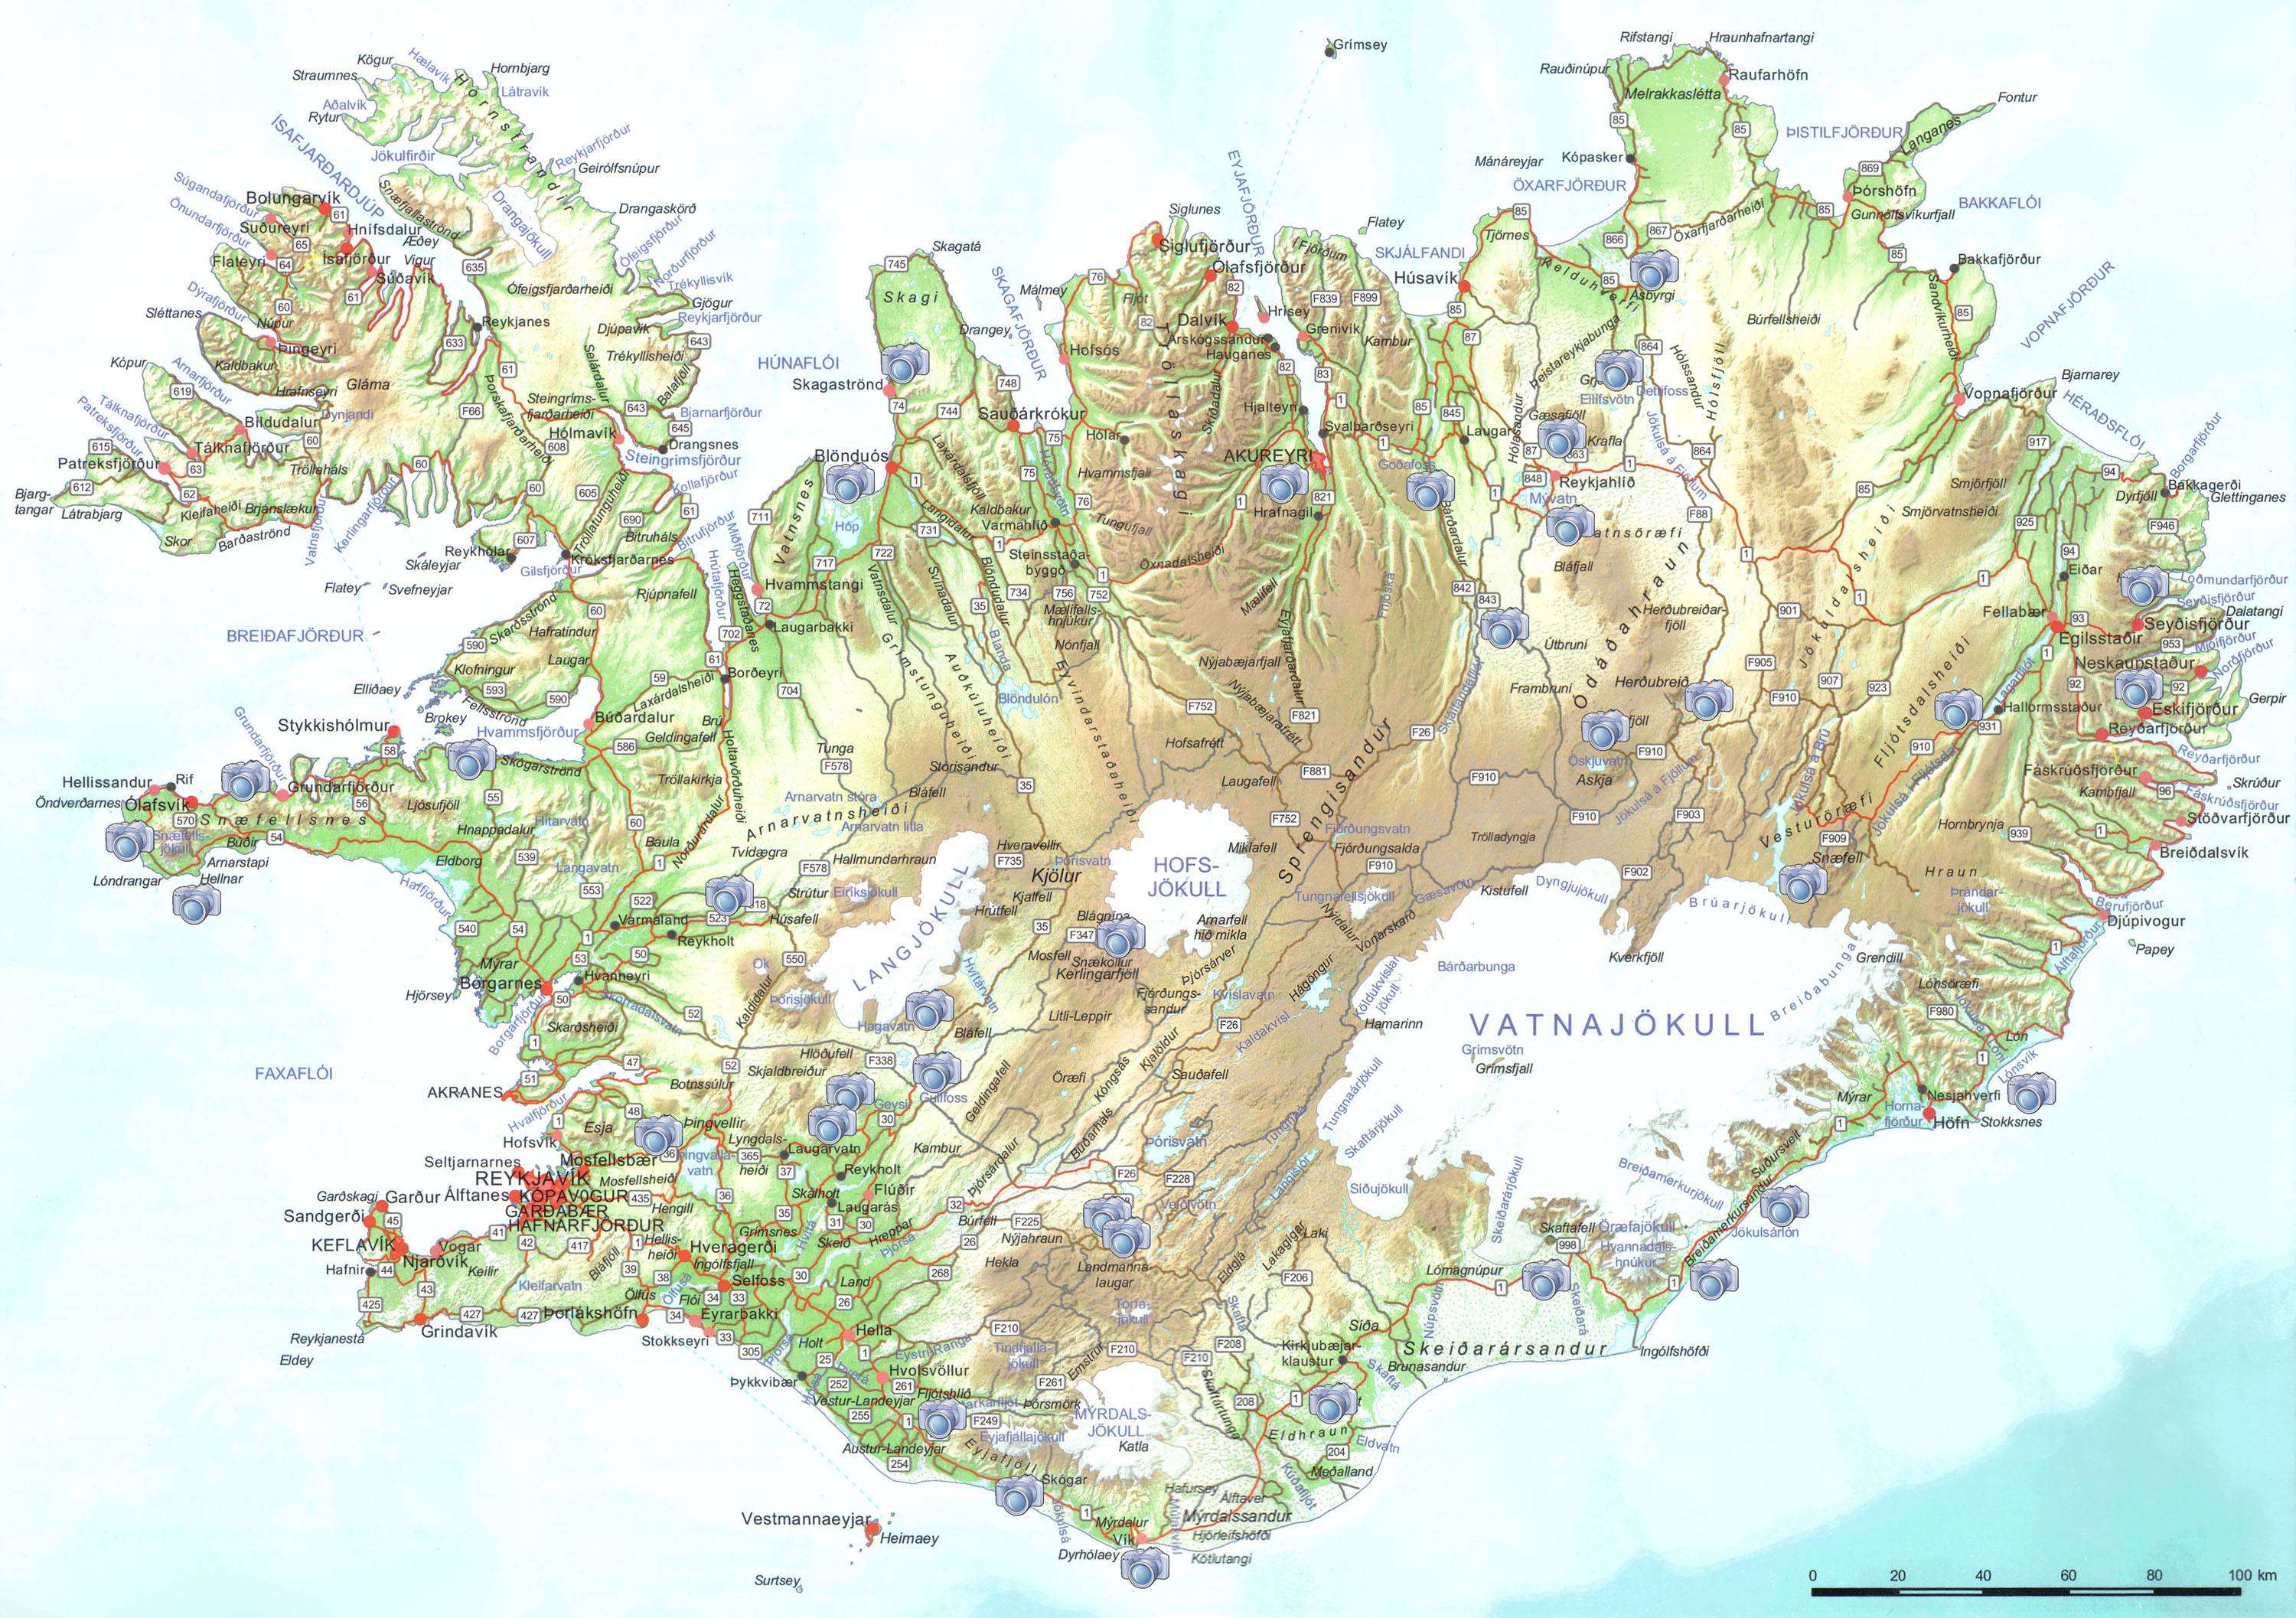 ICELAND Circumnaviation Highlands photo tour summer 2014 – Iceland Tourist Attractions Map